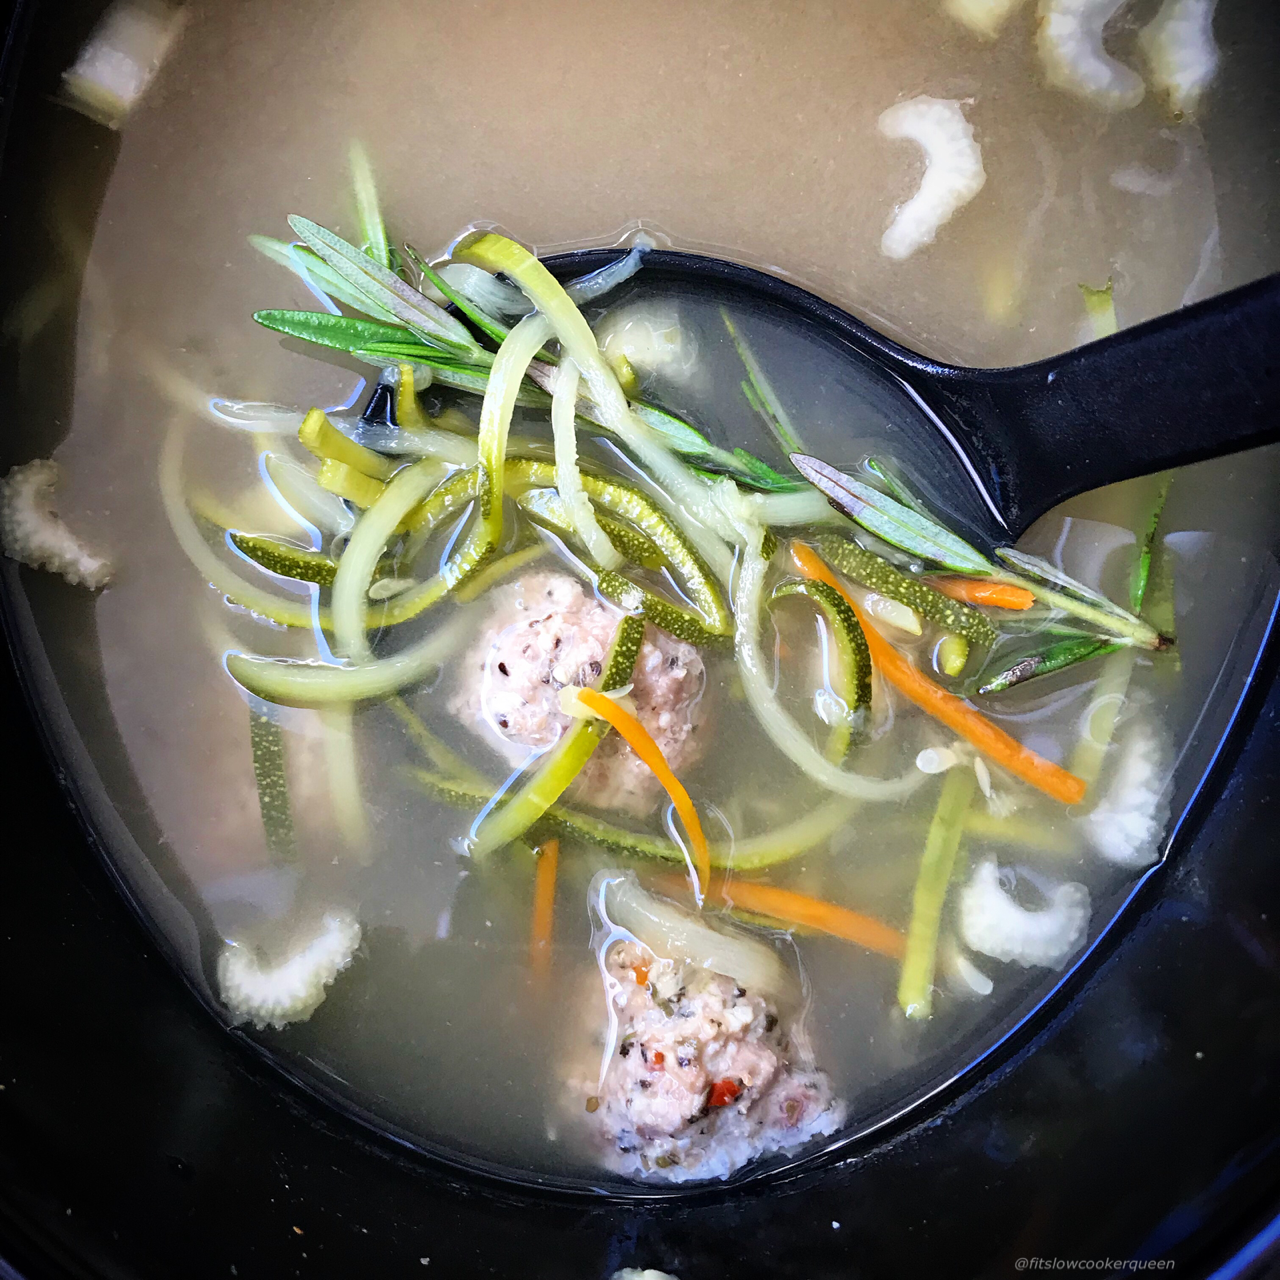 Zoodle soup! Slow cookers are meant to be used year-round. Zucchini zoodles and pre-made meatballs lighten up this soup that can be eaten year-round.